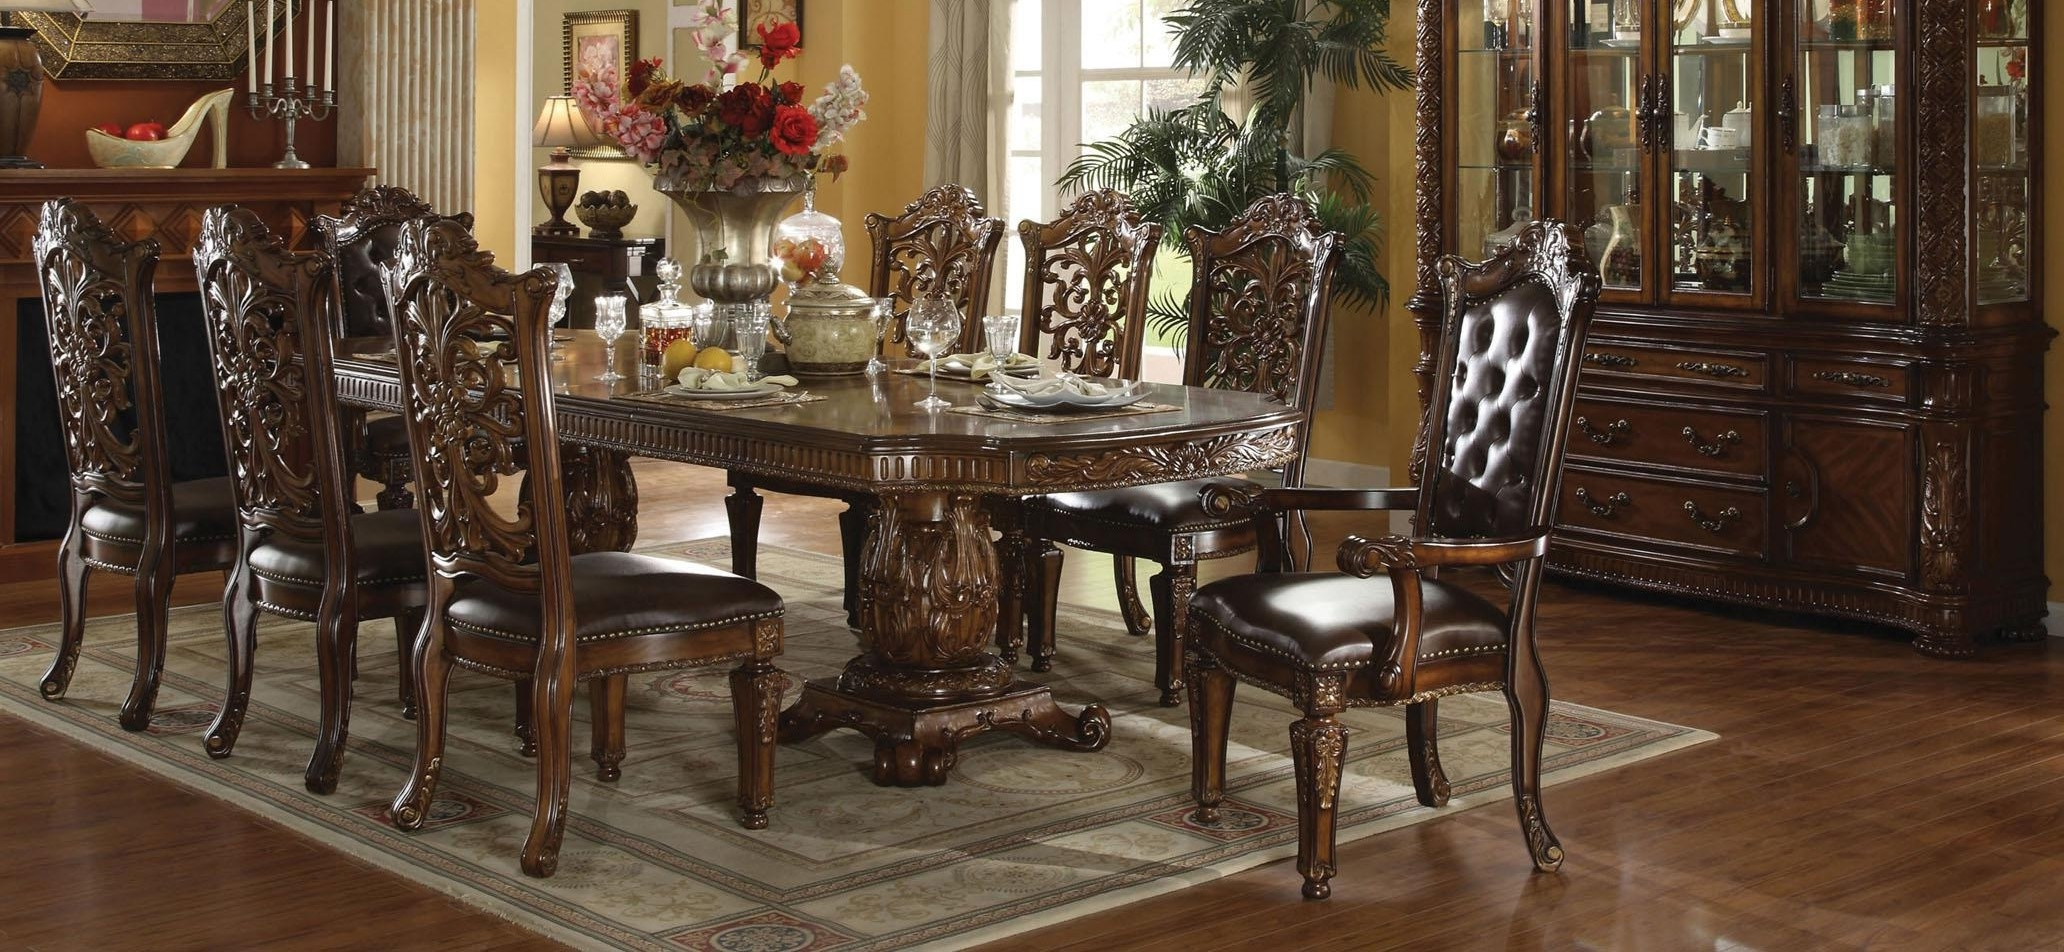 Most Popular Dining Room Furniture  Phoenix, Glendale, Avondale, Goodyear, Peoria With Regard To Phoenix Dining Tables (View 11 of 25)